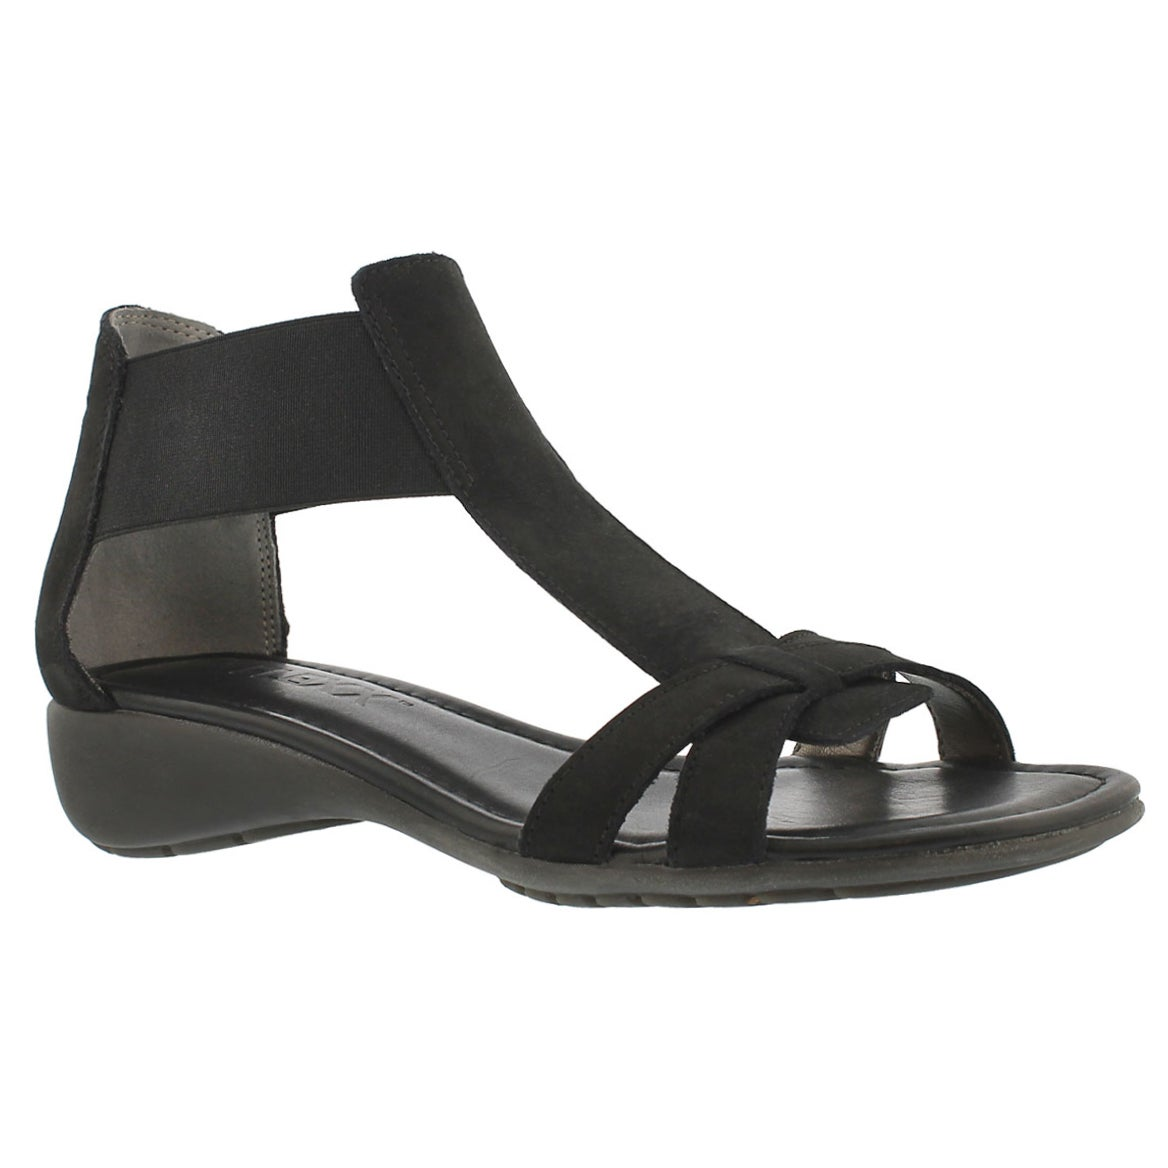 Lds Band Together black casual sandal